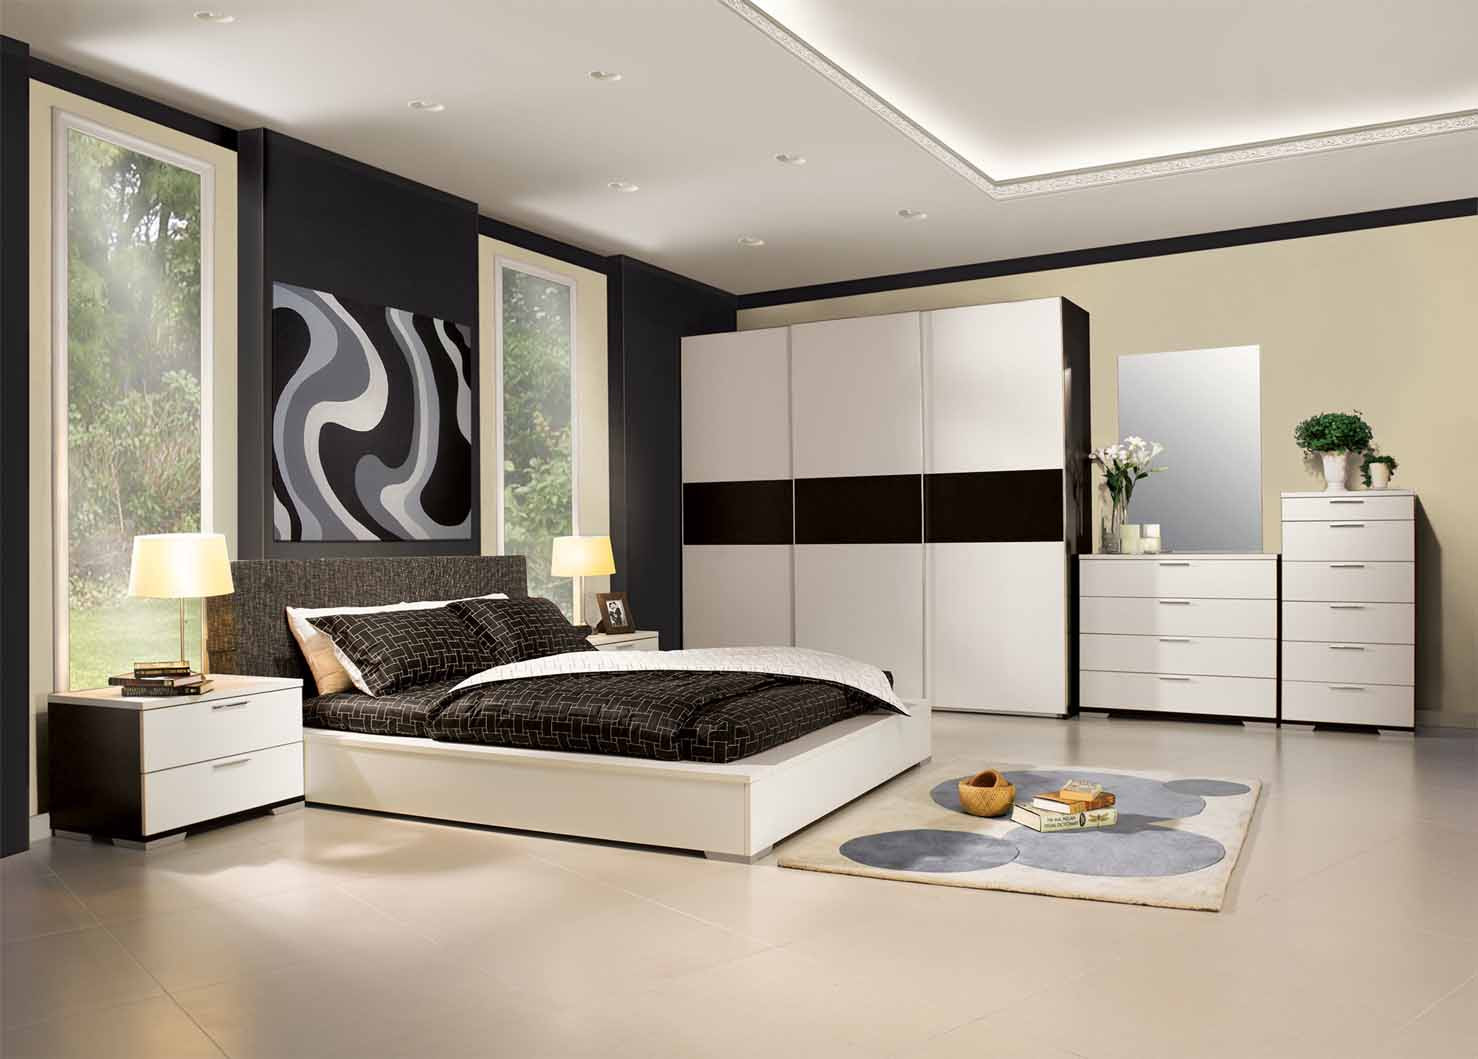 Best ideas about Bedroom Furniture Ideas . Save or Pin awesome Bedrooms ideas pictures 2014 Decorating Bedrooms Now.